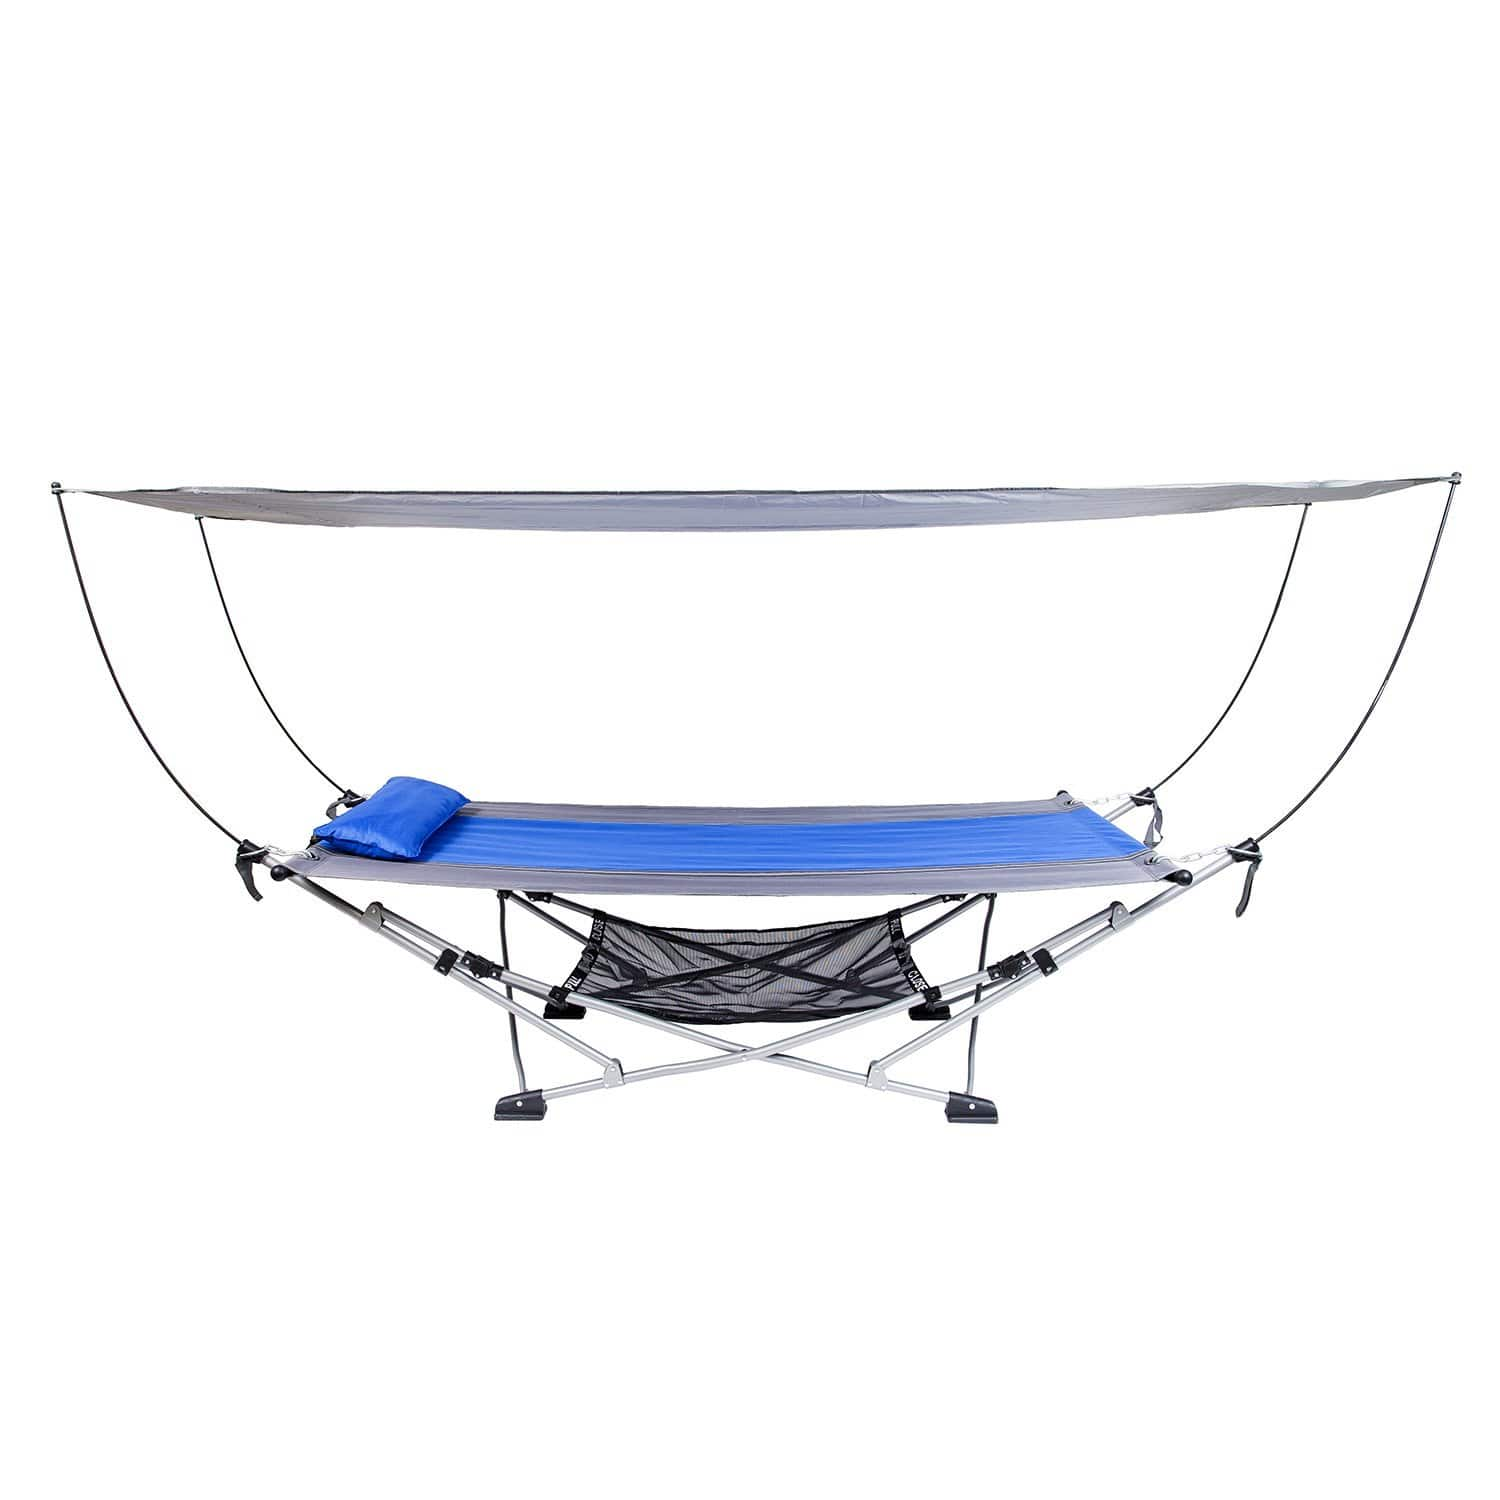 Mac Folding Hammock with Removable Canopy - $39.97 (REG. $100+) COSTCO F/S